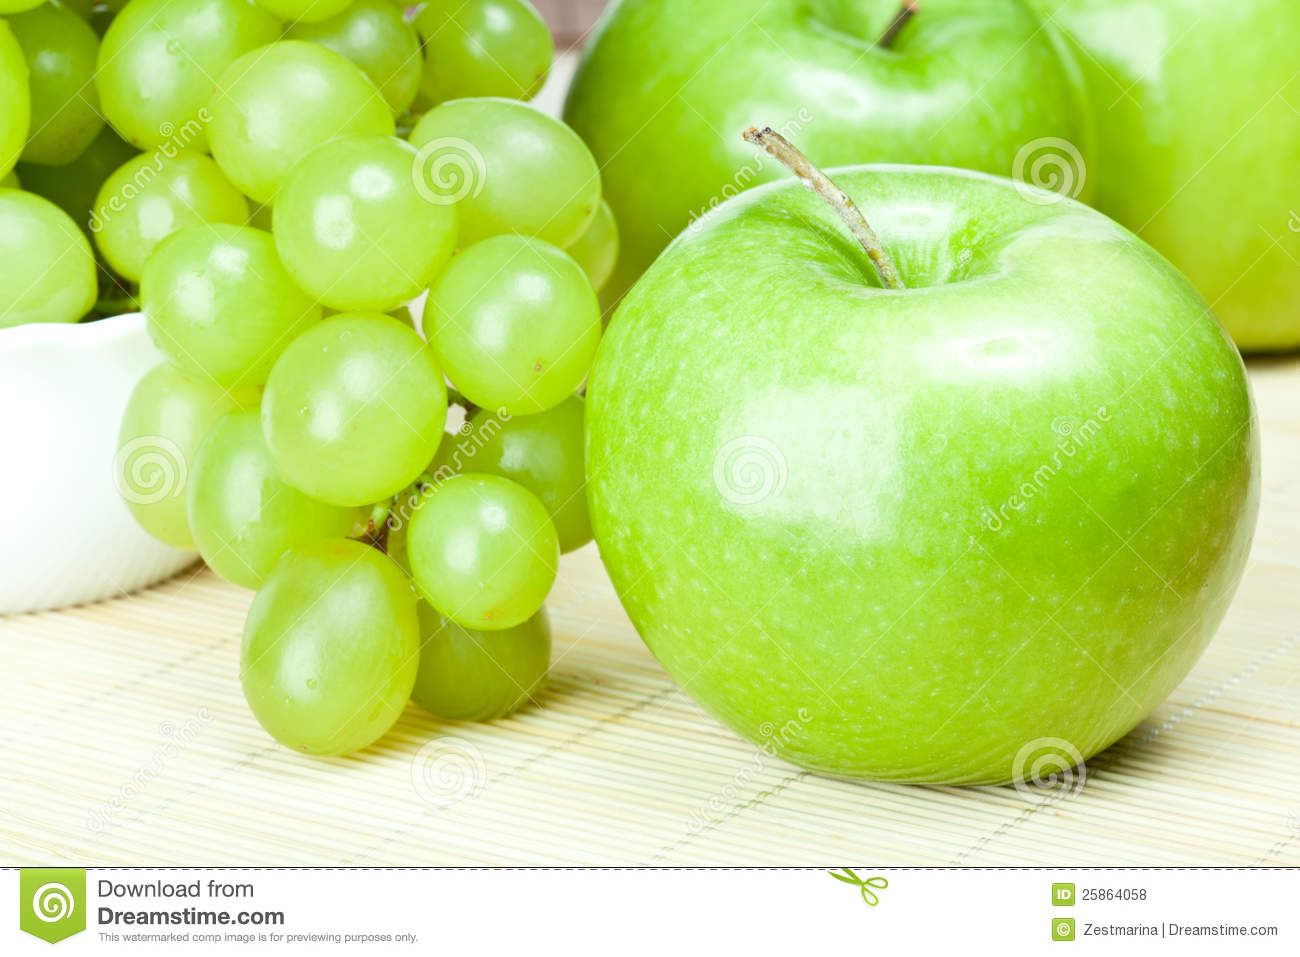 Free Clipart Of Fruits And Vegetables